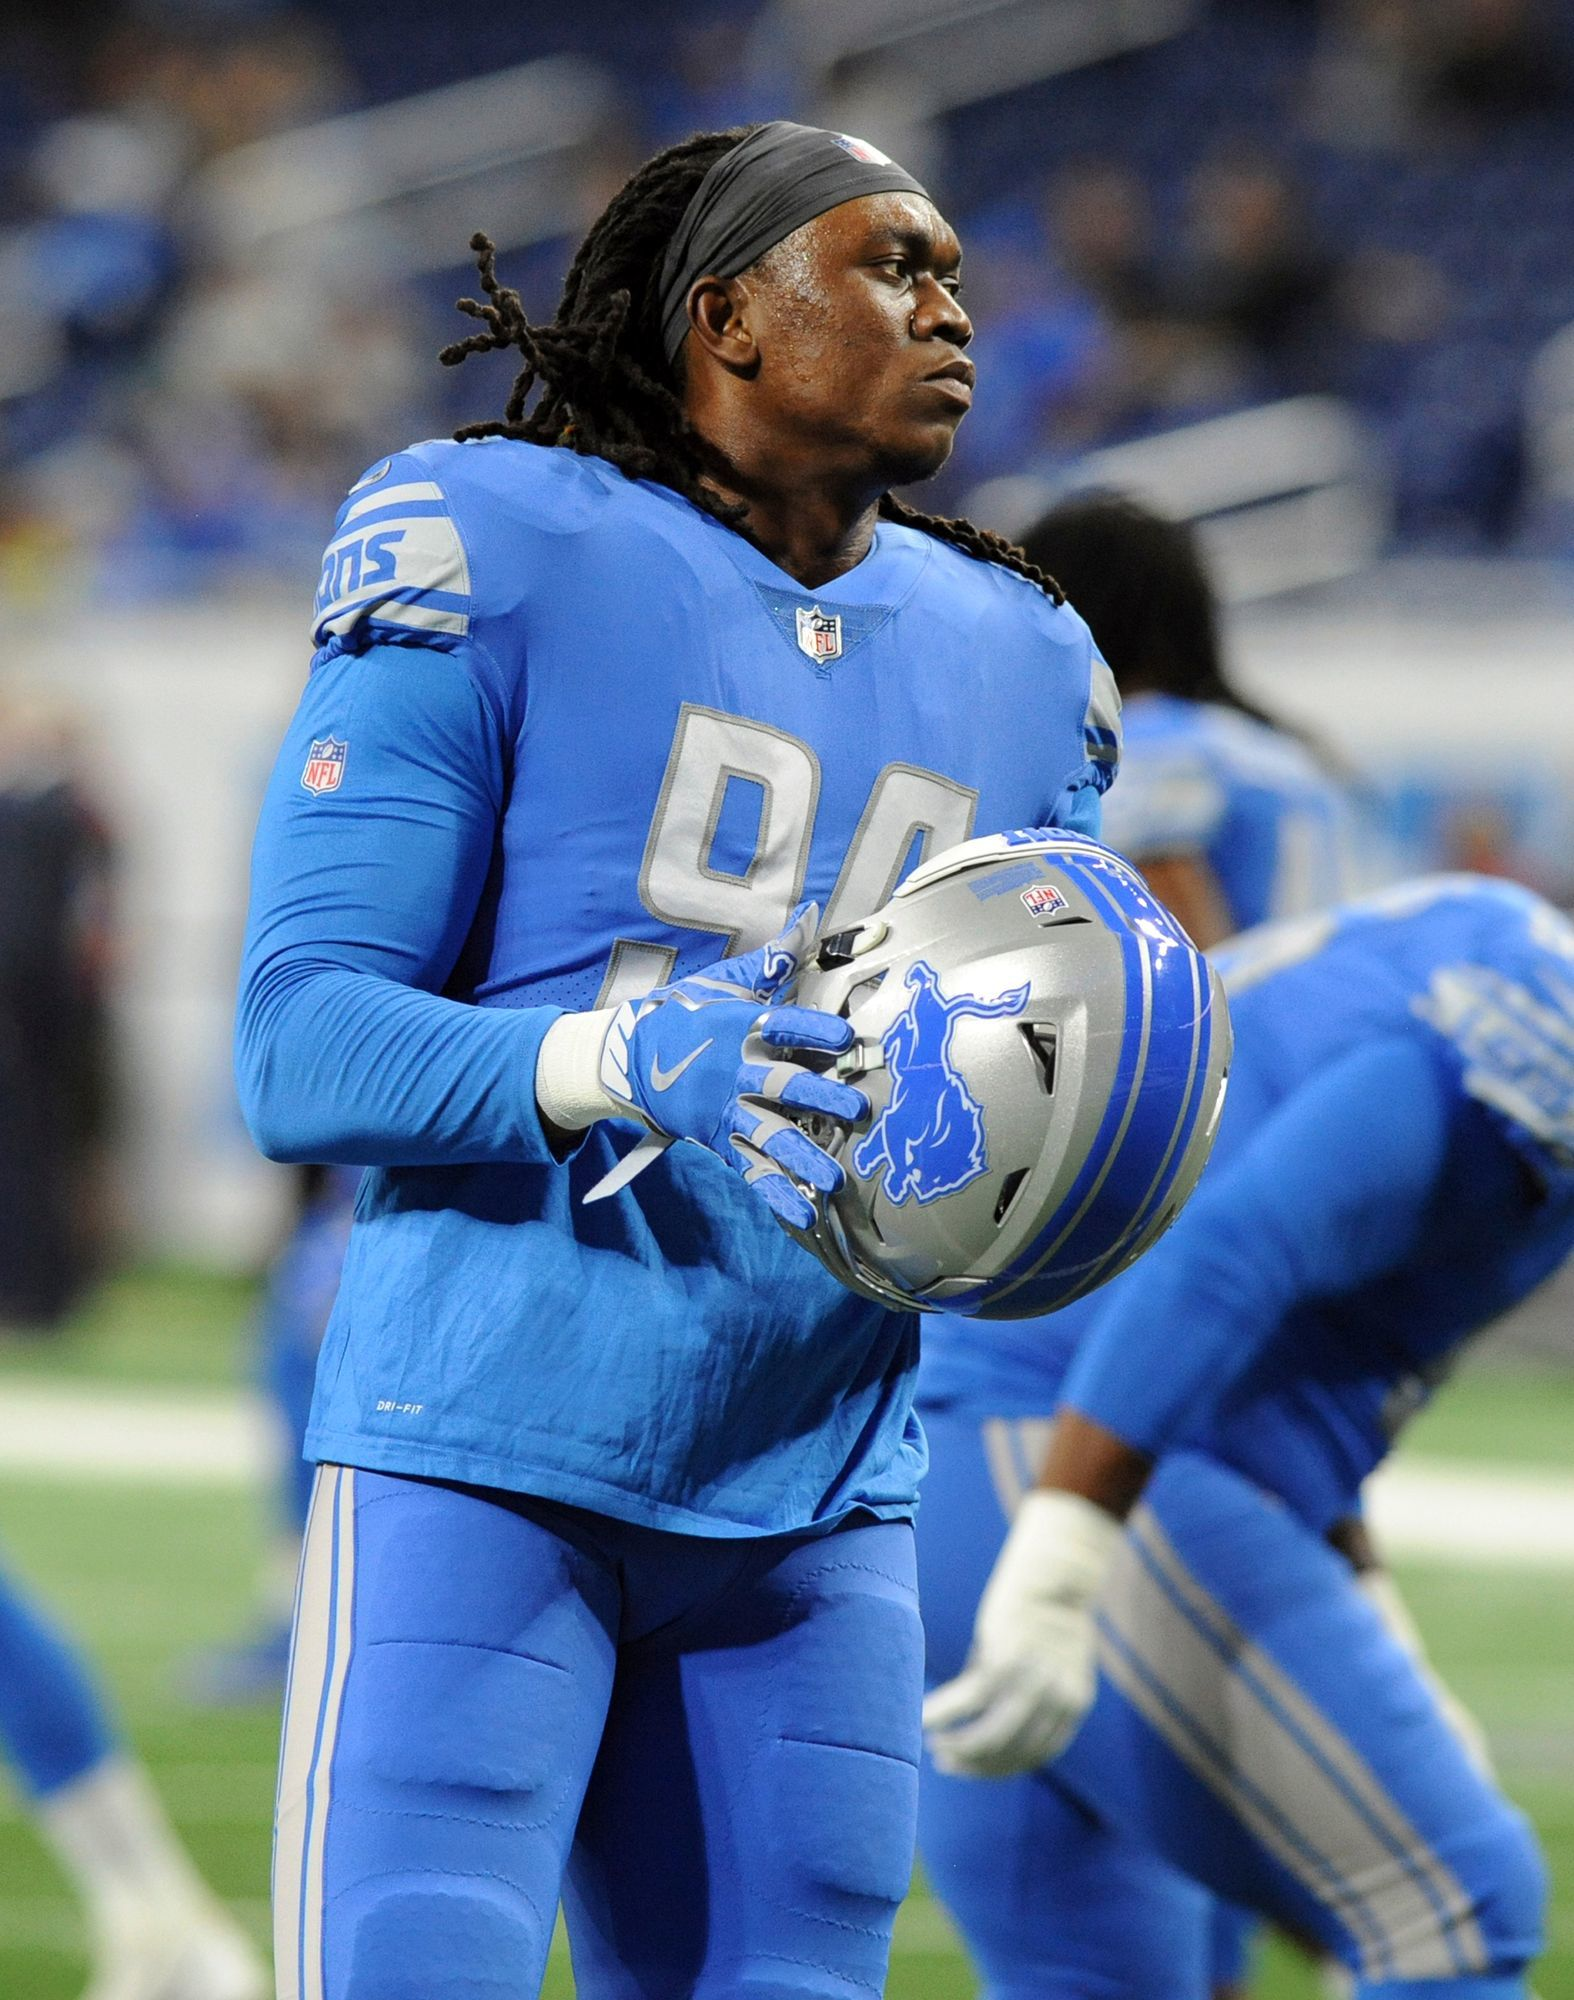 DE Ziggy Ansah: When he plays, he clearly remains Detroit's best pass rusher. A disruptive force off the right edge, he's managed to record a pair of sacks despite playing fewer than 30 snaps this season. The Lions had big plans to build their front around Ansah, but the shoulder injury that sidelined him six games put the kibosh on that. Grade: Inc